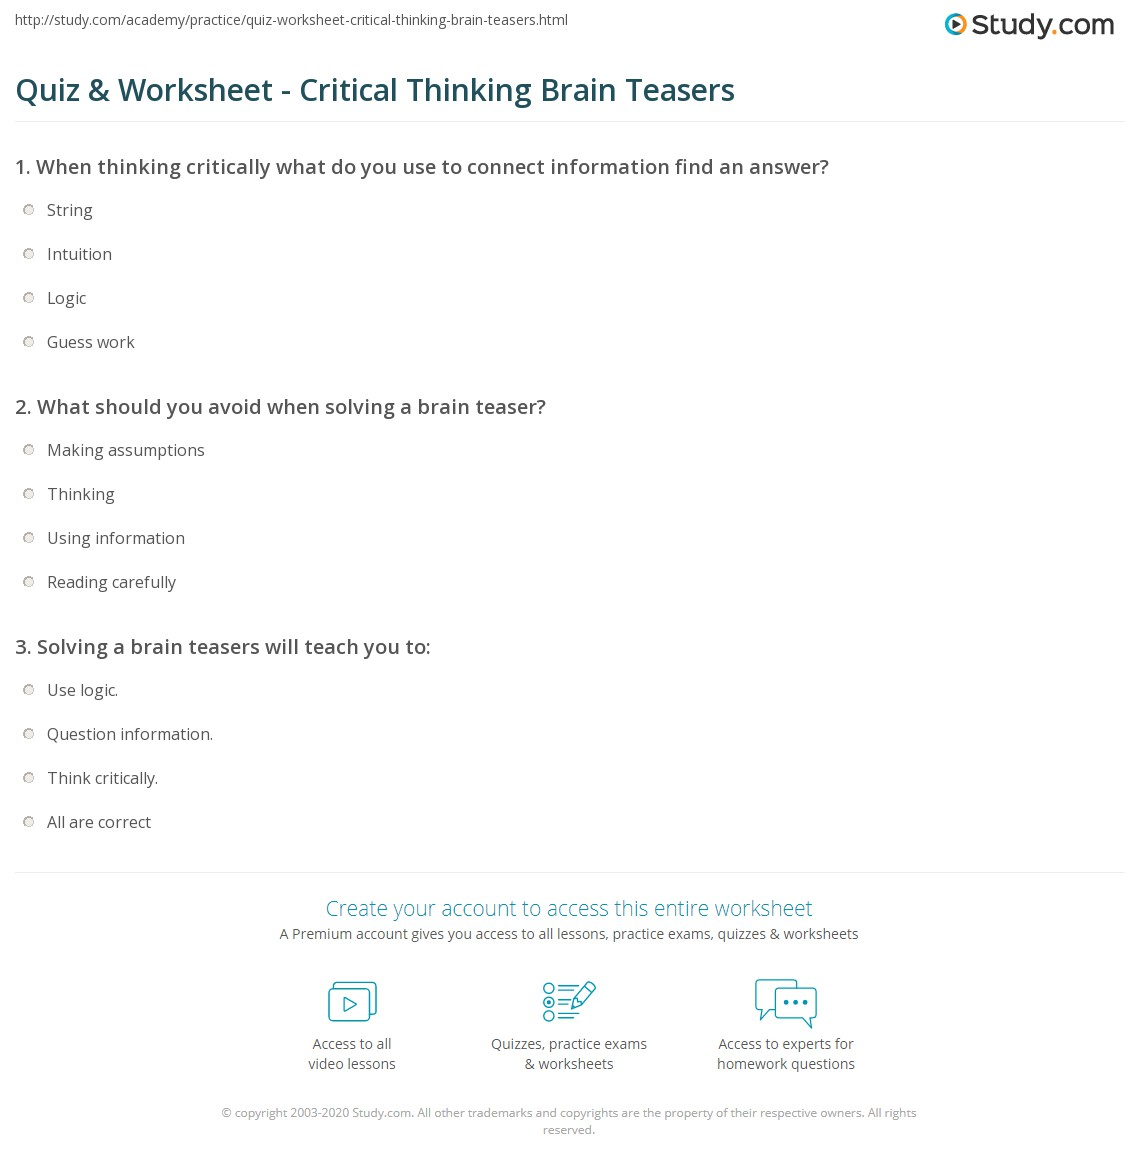 critical thinking brain teasers for college students